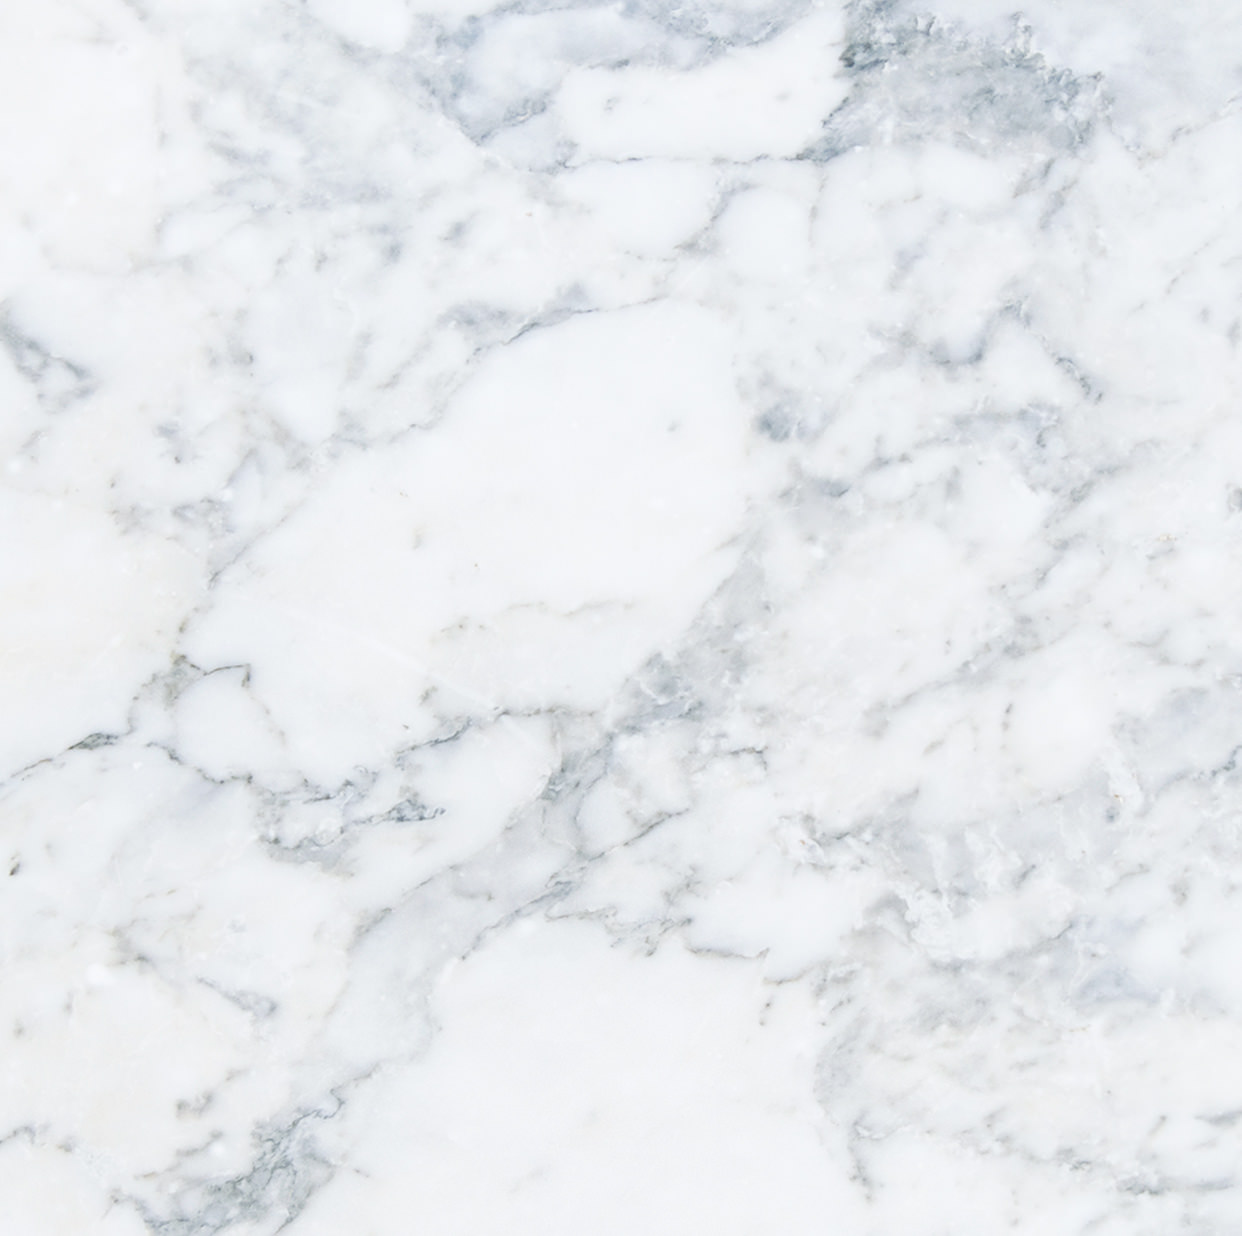 Wallpaper Desktop: 15+ Marble Wallpapers, Backgrounds, Images, Pictures